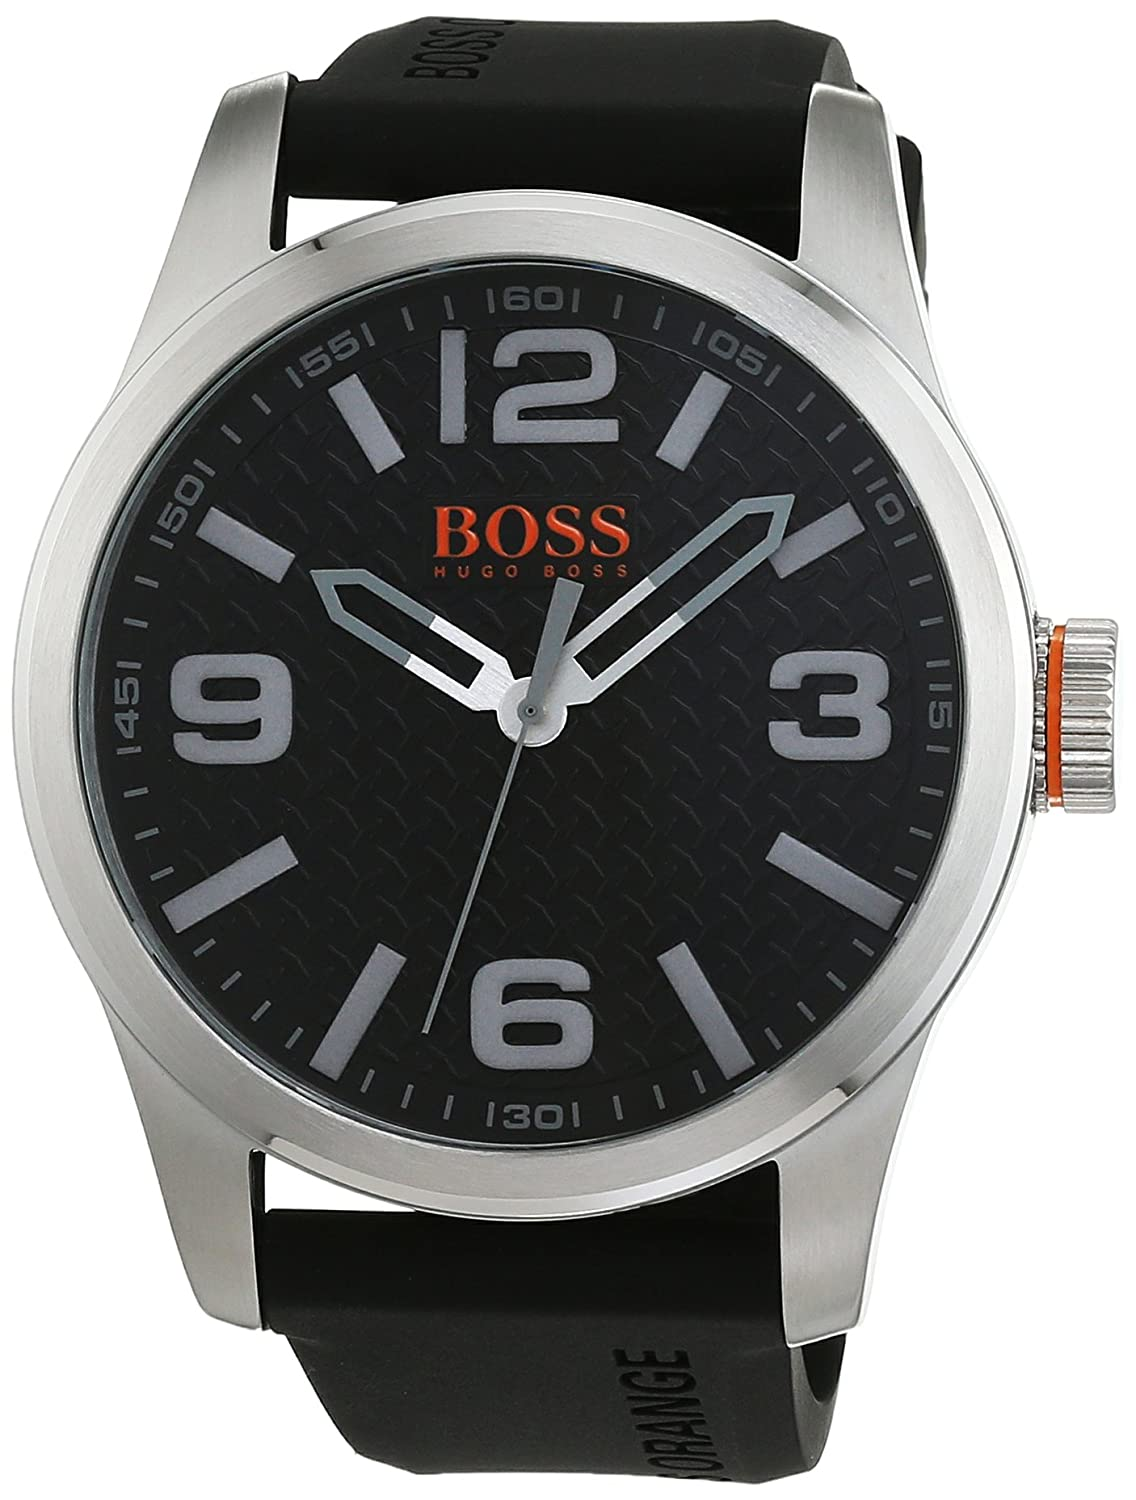 BOSS Orange Herren-Armbanduhr PARIS Analog Quarz Silikon 1513350